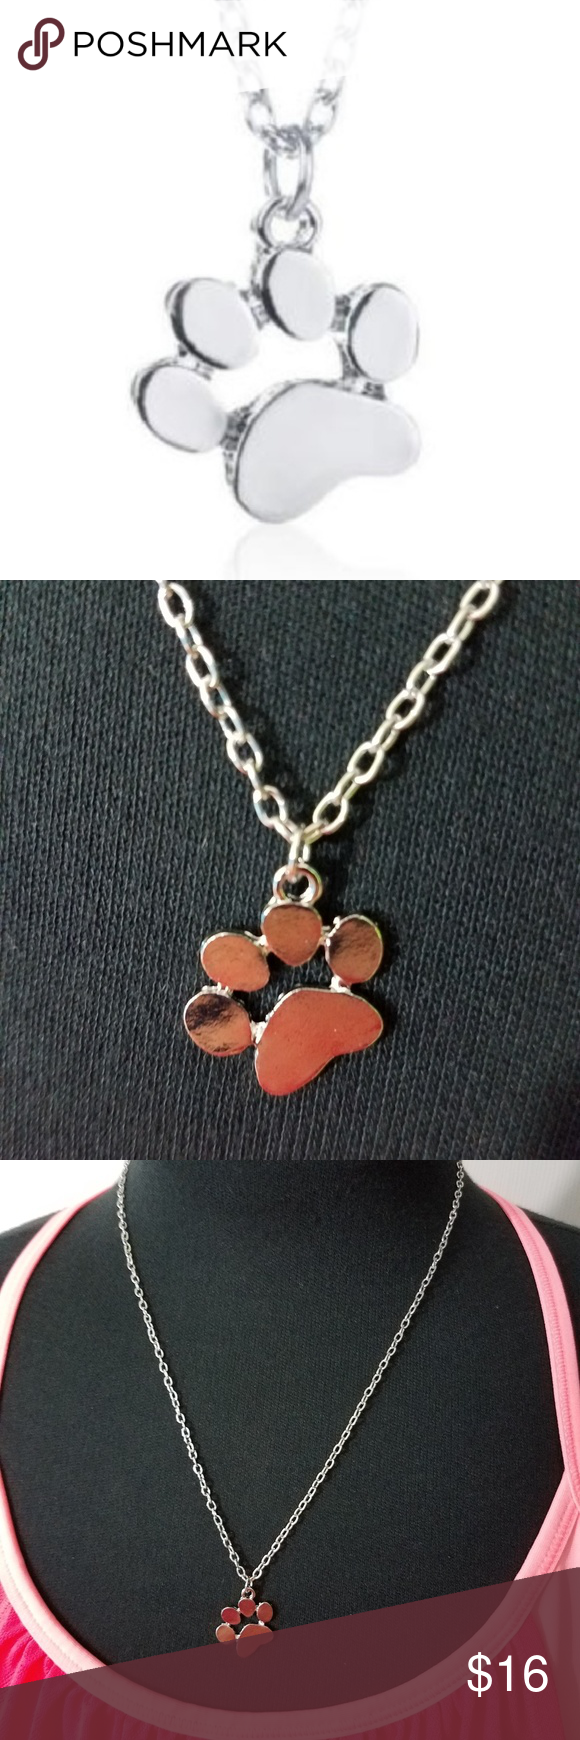 Paw Print Necklace in Silver Plate